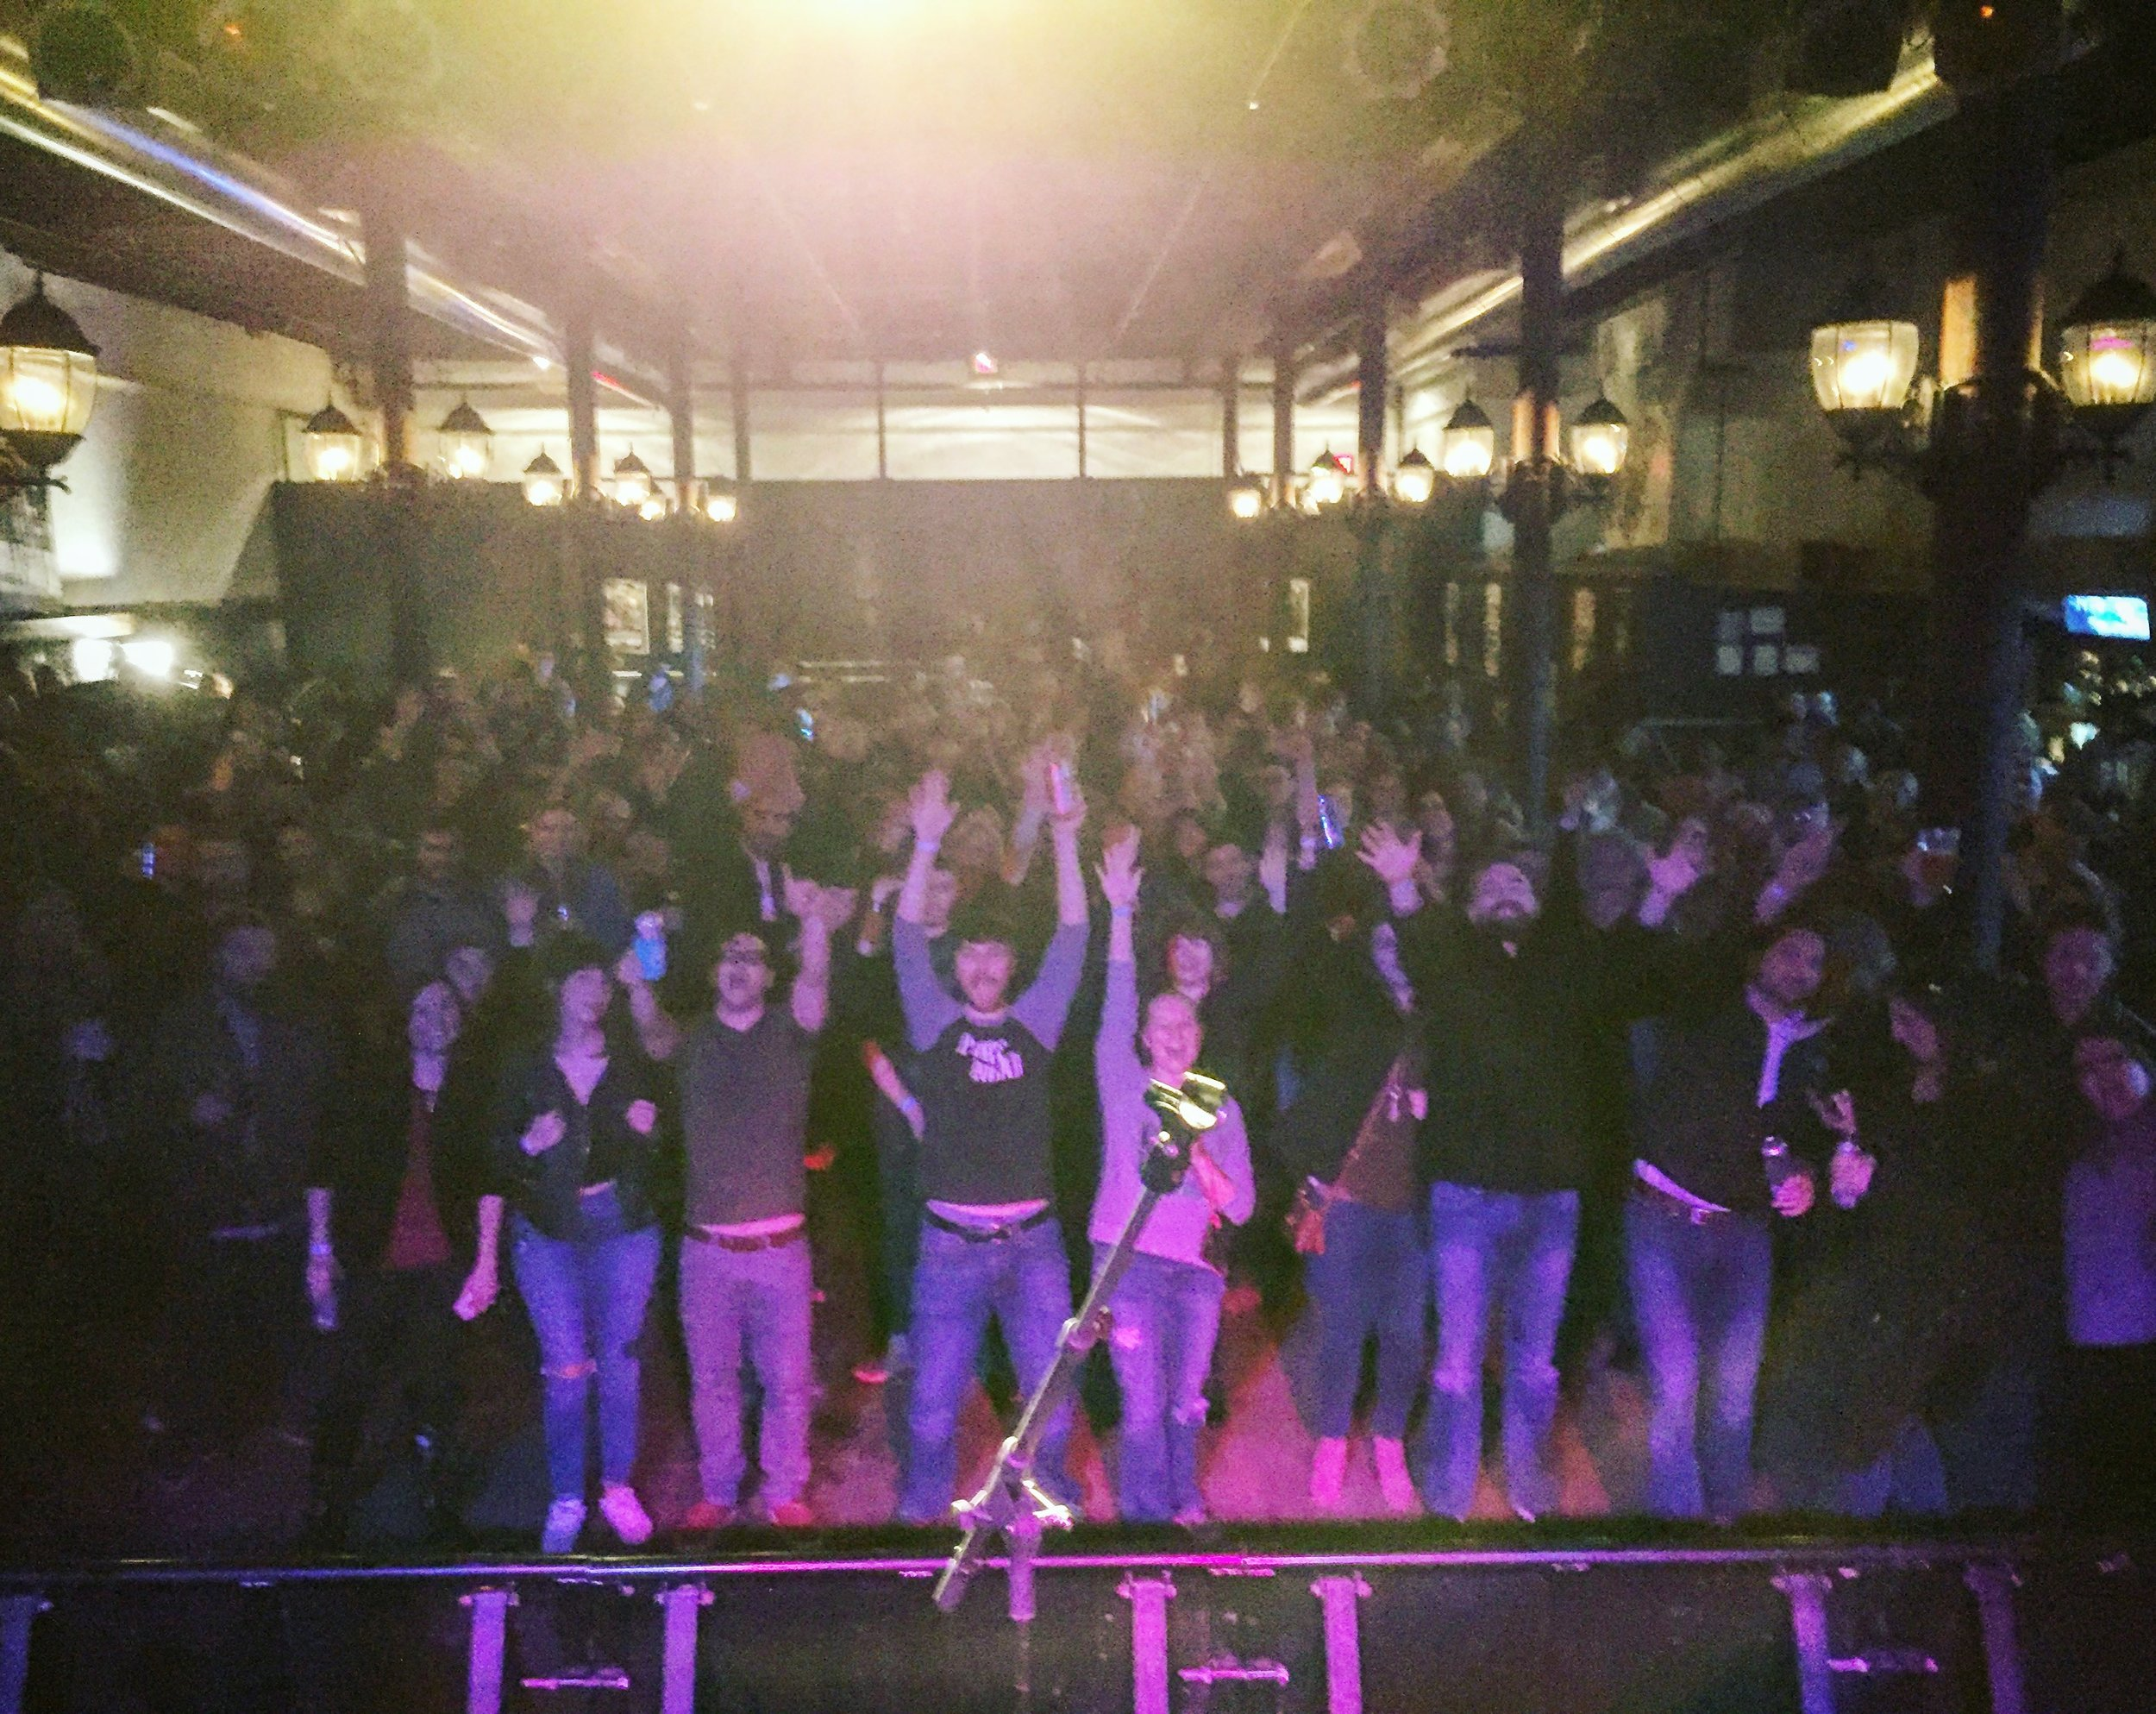 End of our set at Wooly's in Des Moines, IA on the #BasselResistTour - what a night!